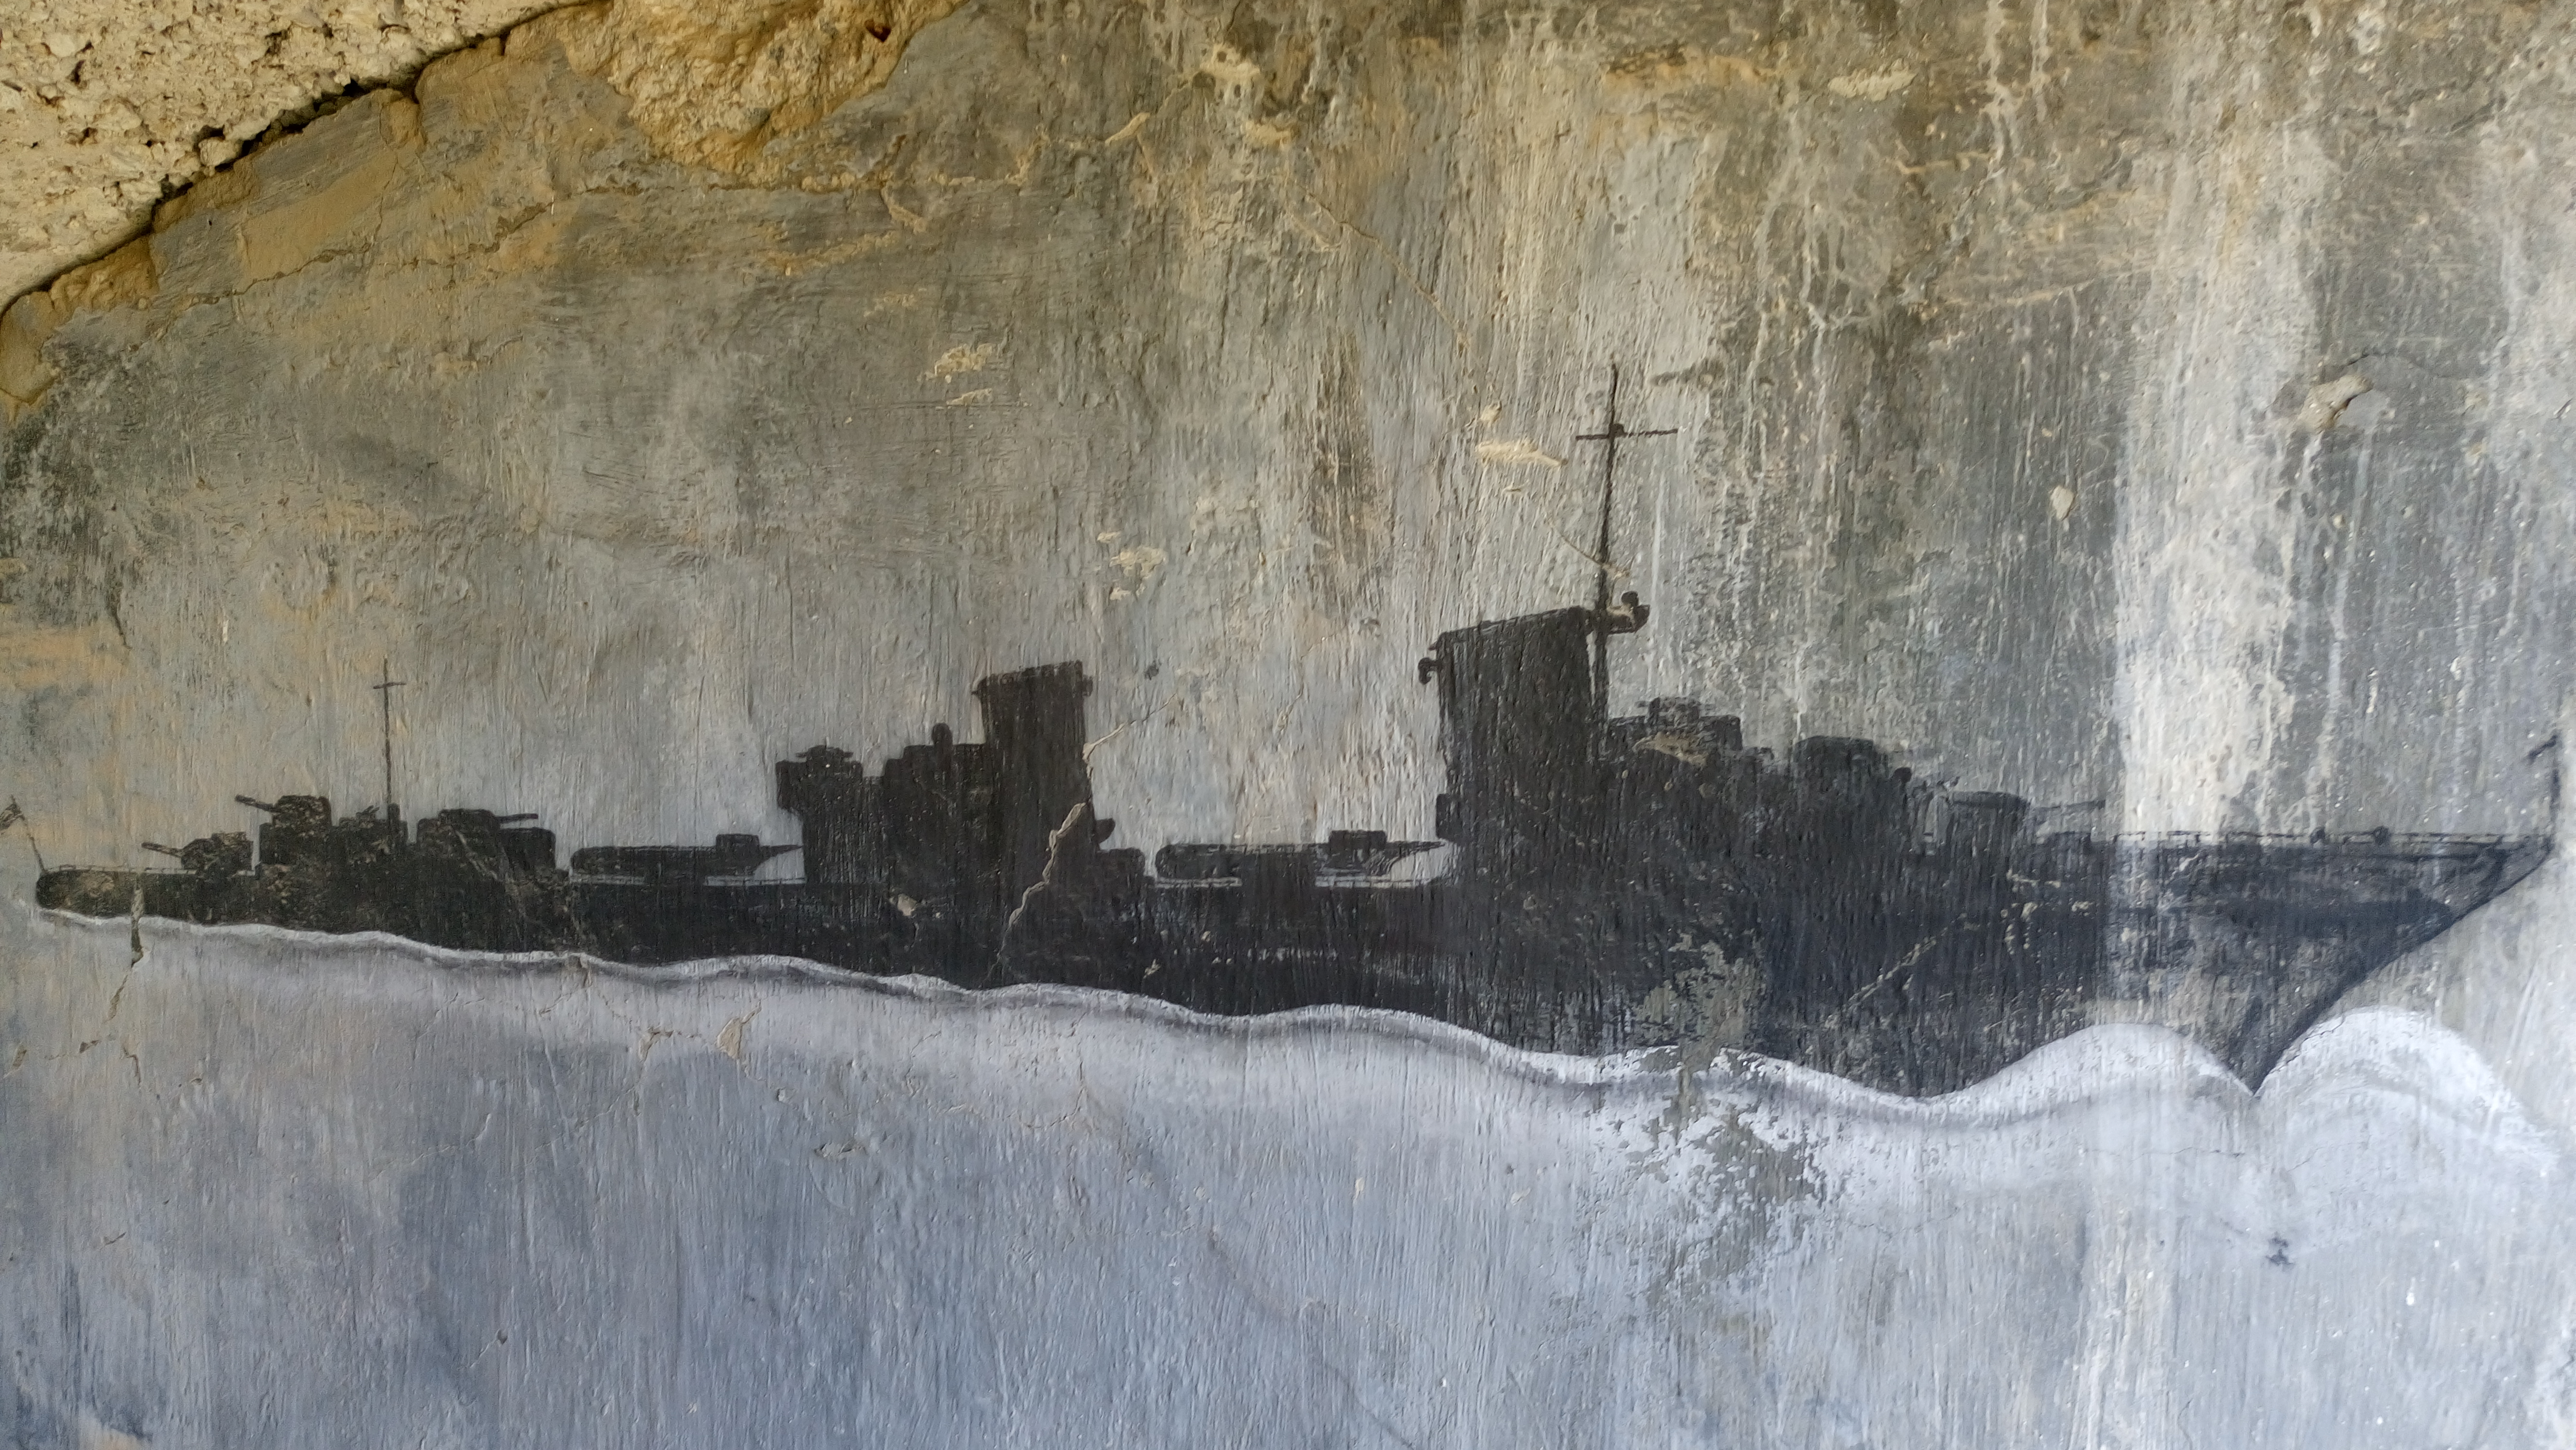 A destroyer, painted by the Germans on the wall of one of the gun emplacements